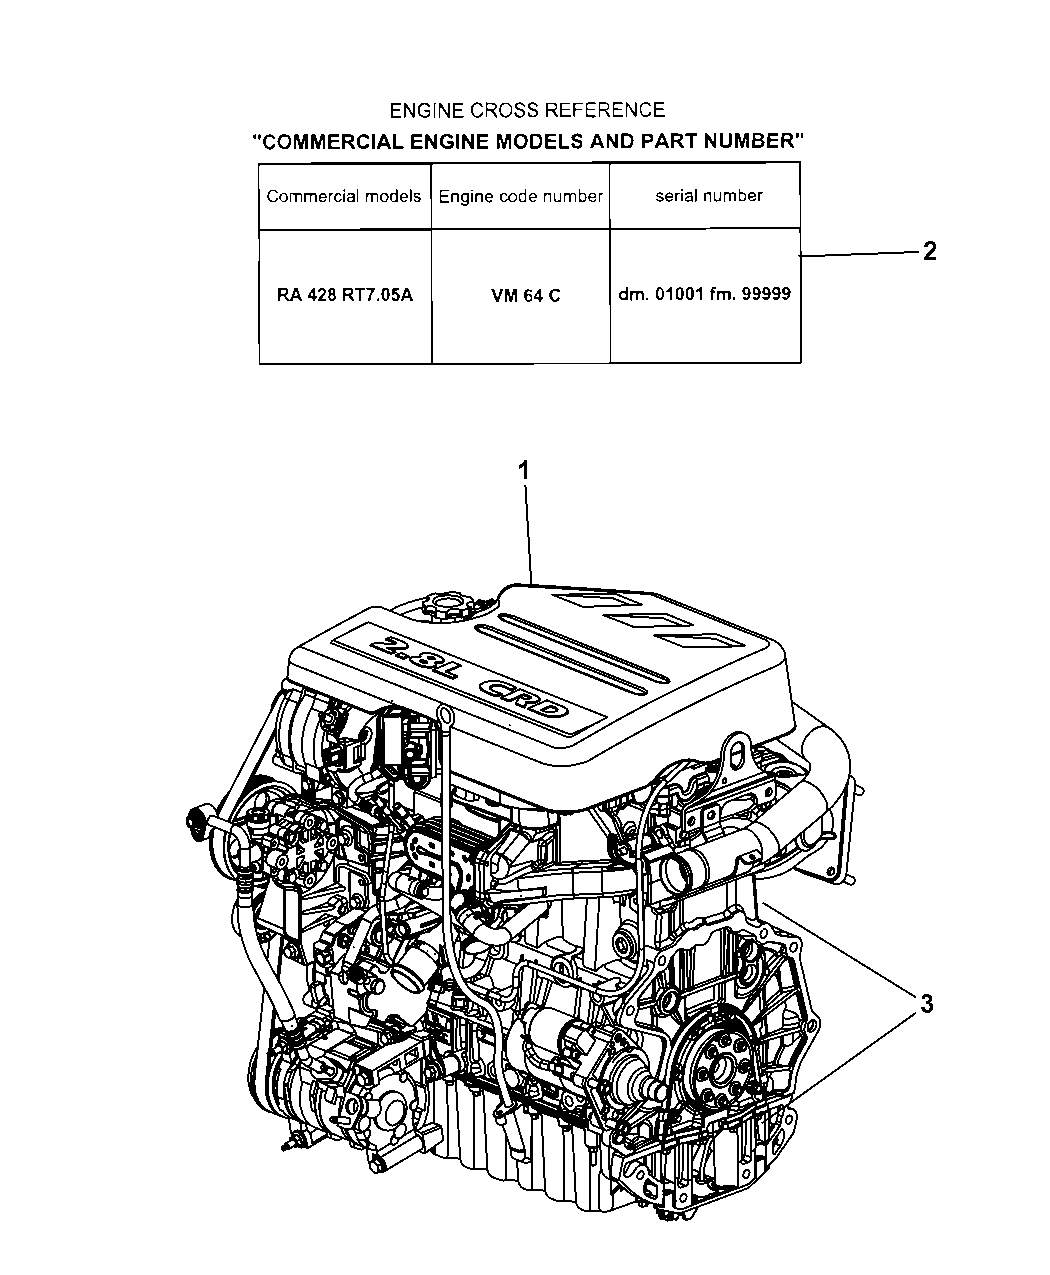 2010 Jeep Wrangler Engine Assembly & Service - Thumbnail 1